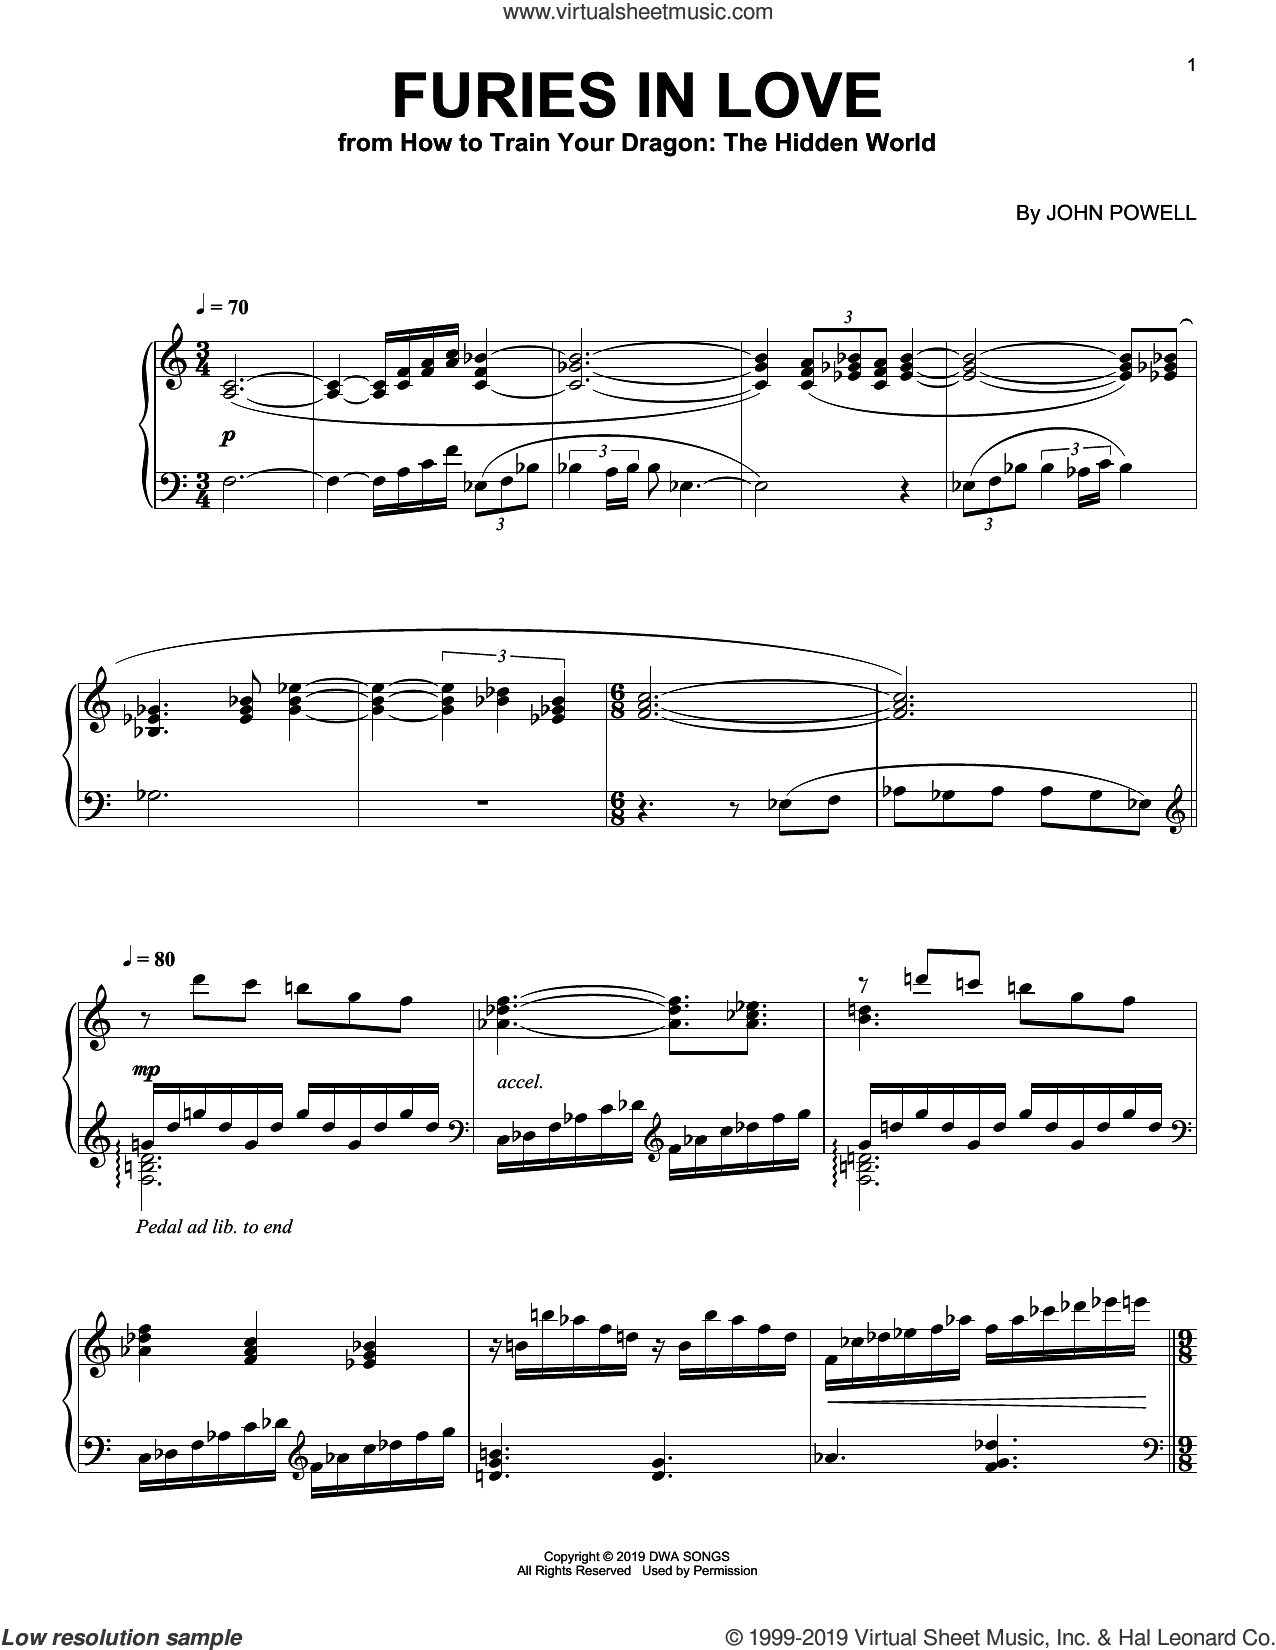 Furies In Love (from How to Train Your Dragon: The Hidden World) sheet music for piano solo by John Powell, intermediate skill level